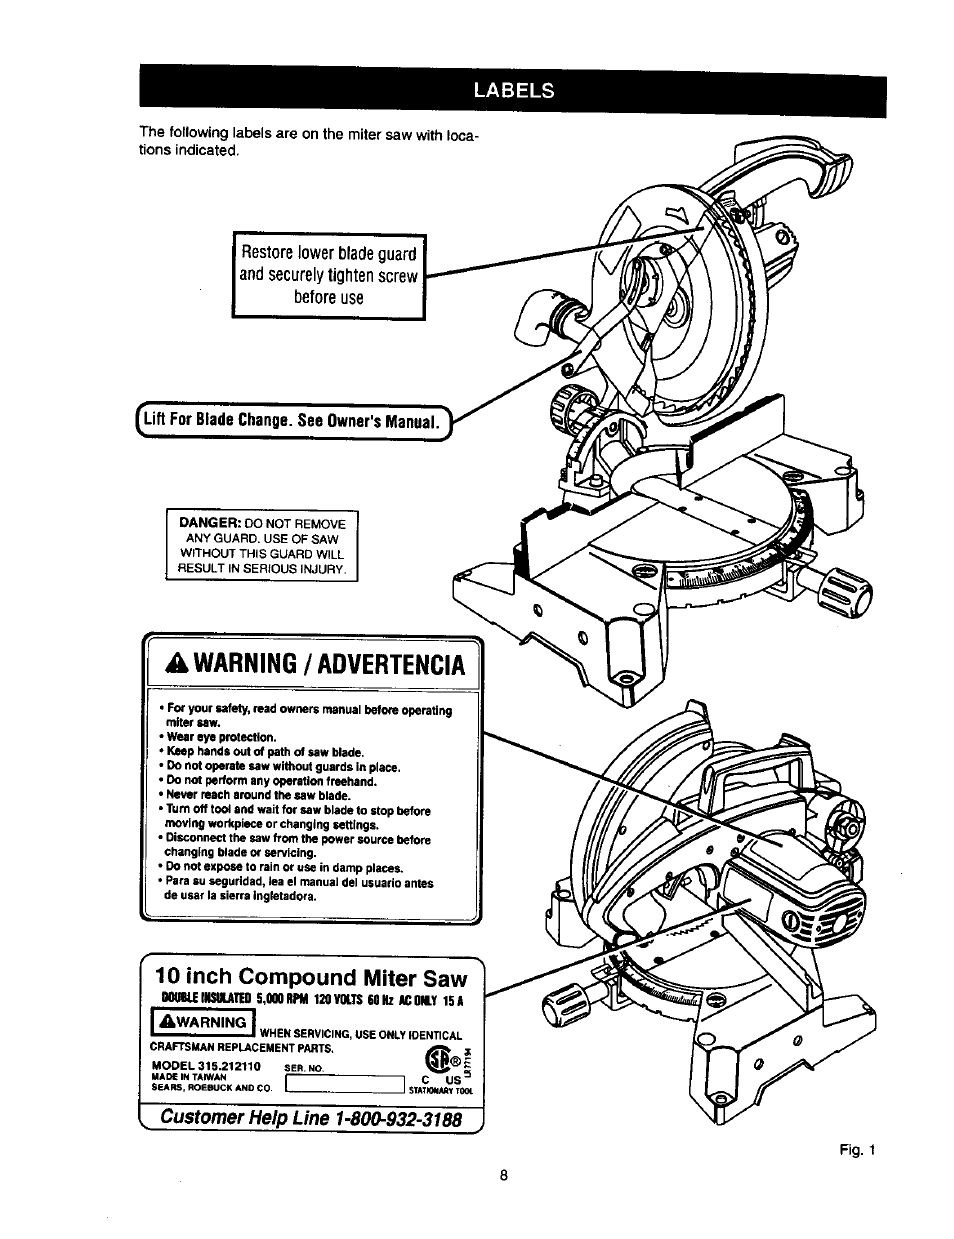 Craftsman 10 Inch Miter Saw Manual Compound Wiring Diagram Owners